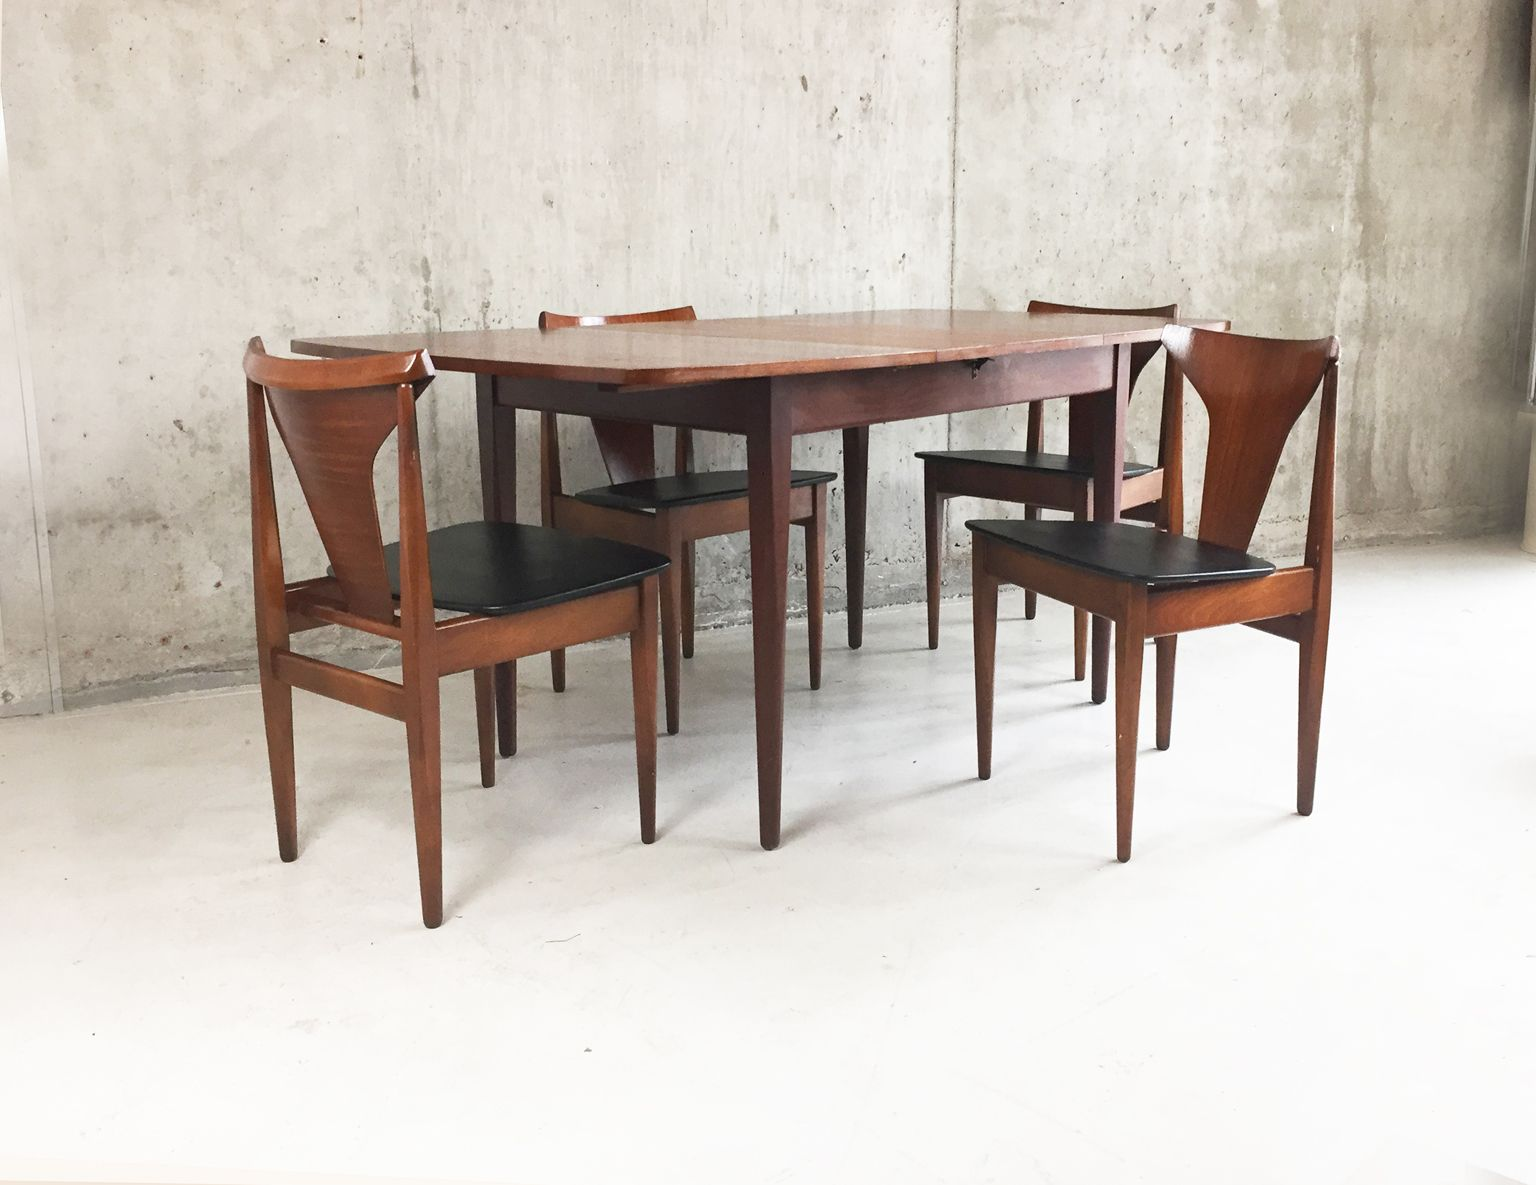 Teak dining room sets g plan teak dining table 6 chairs for G plan dining room furniture